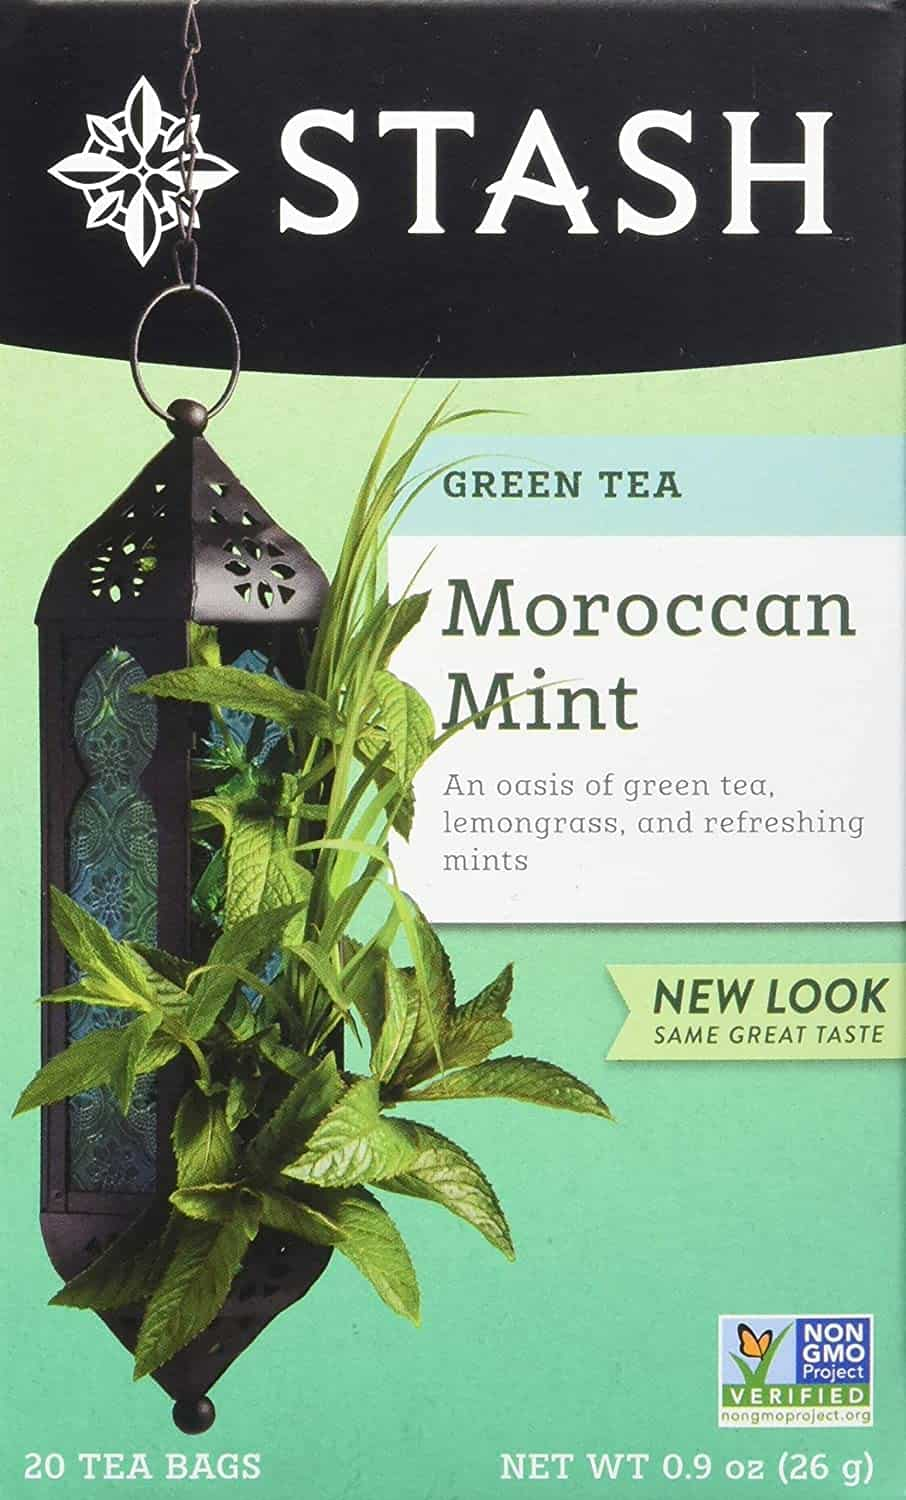 Stash Tea Moroccan Mint Green Tea